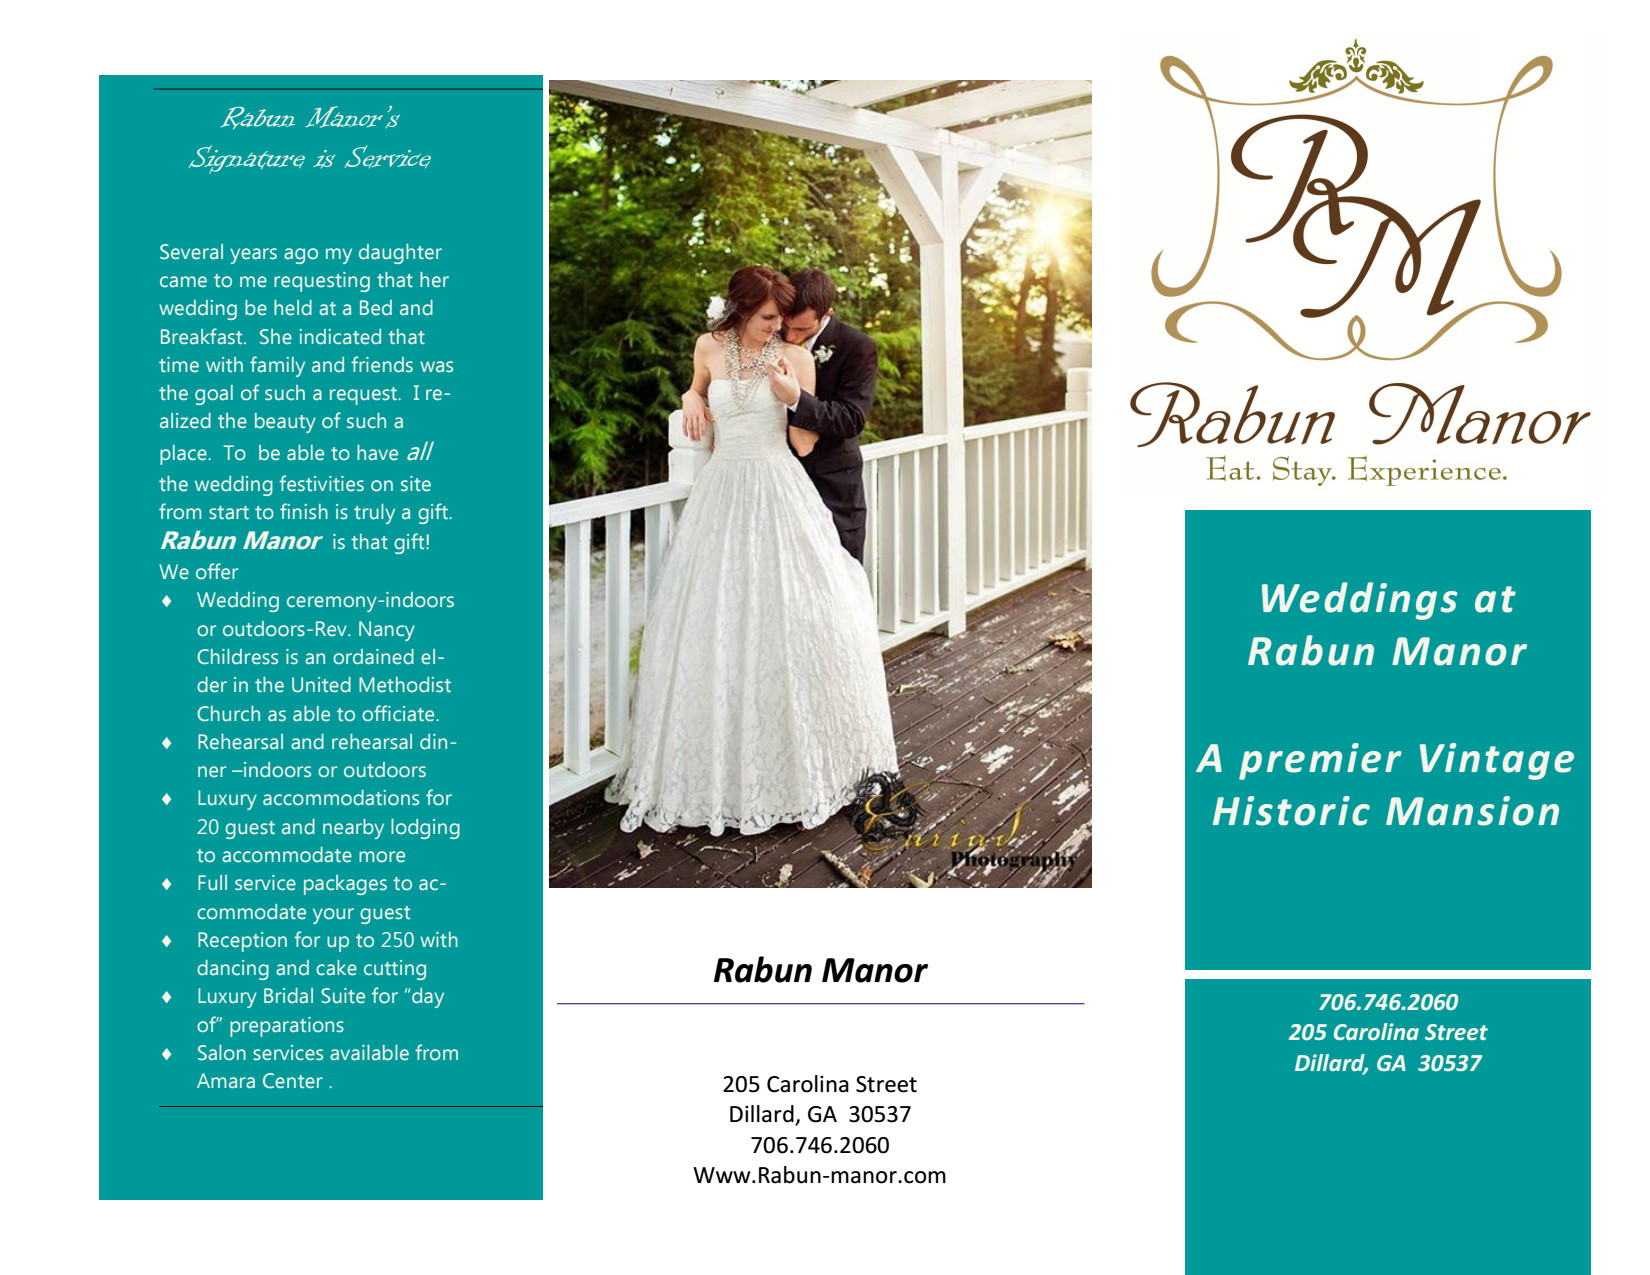 Rabun Manor Weddings